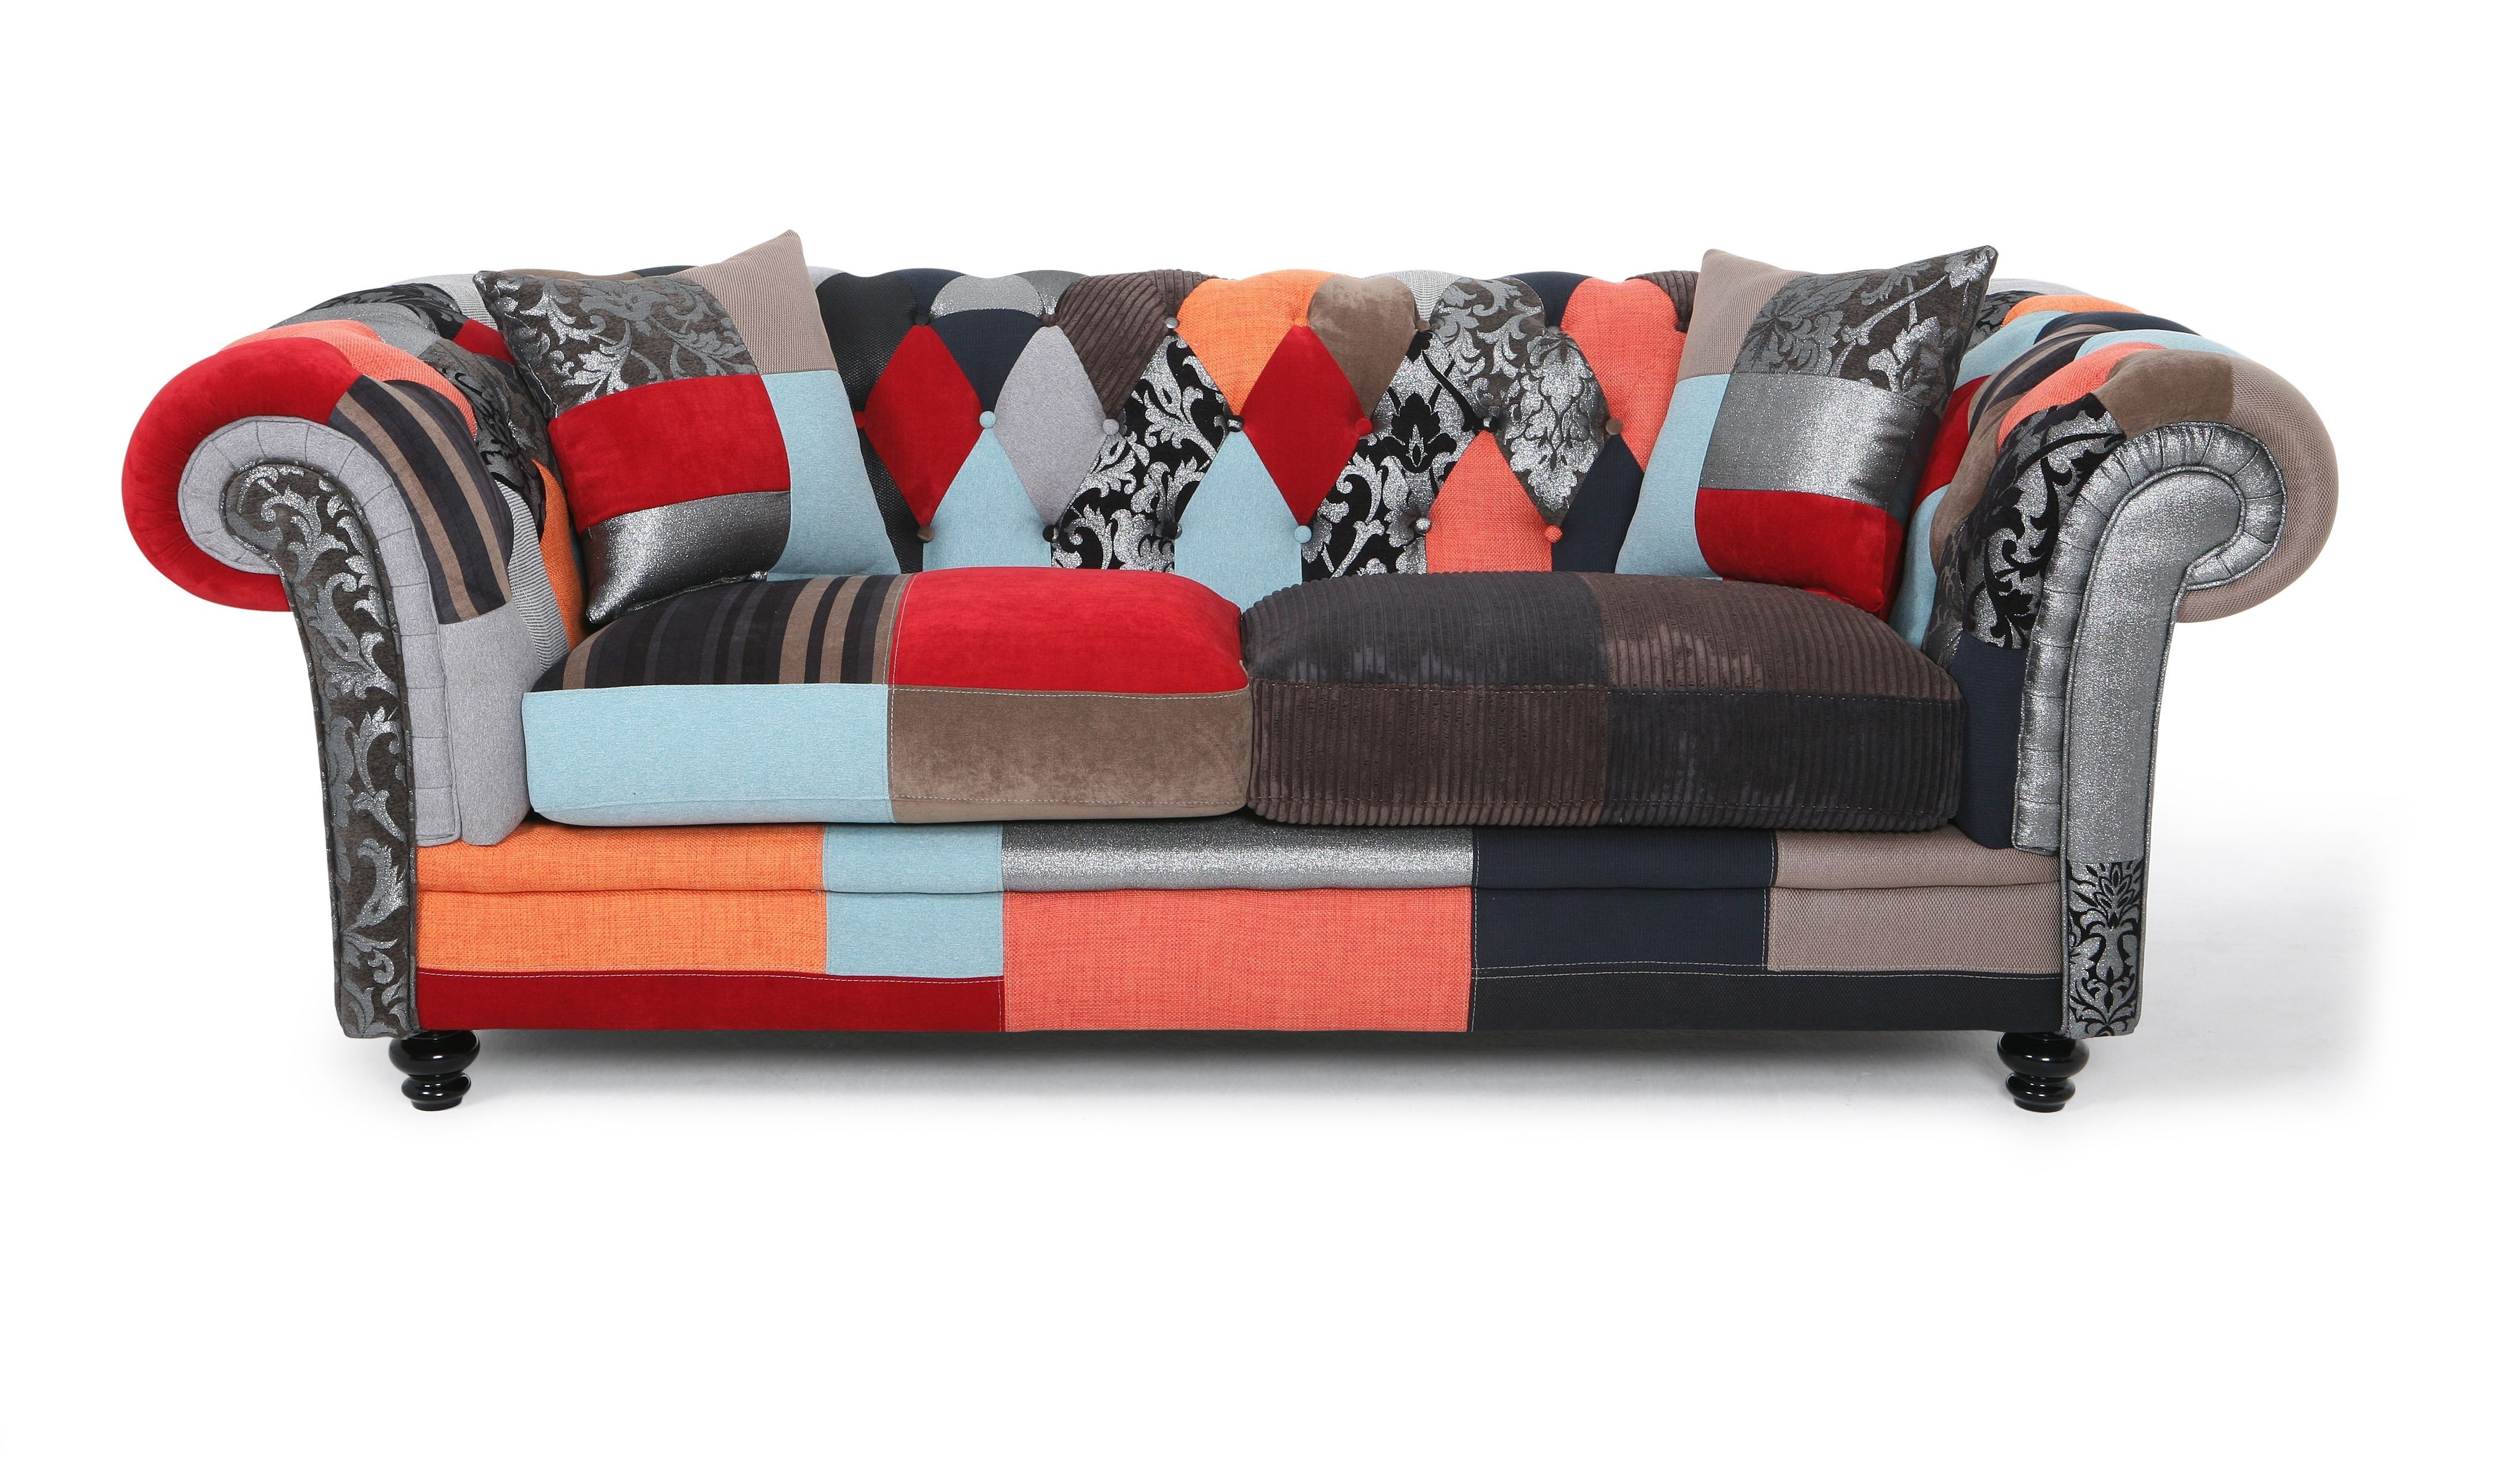 Chesterfield Lounge Sessel Willobys Patchwork 2 Seater Chesterfield Sofa Fora Namjestaj